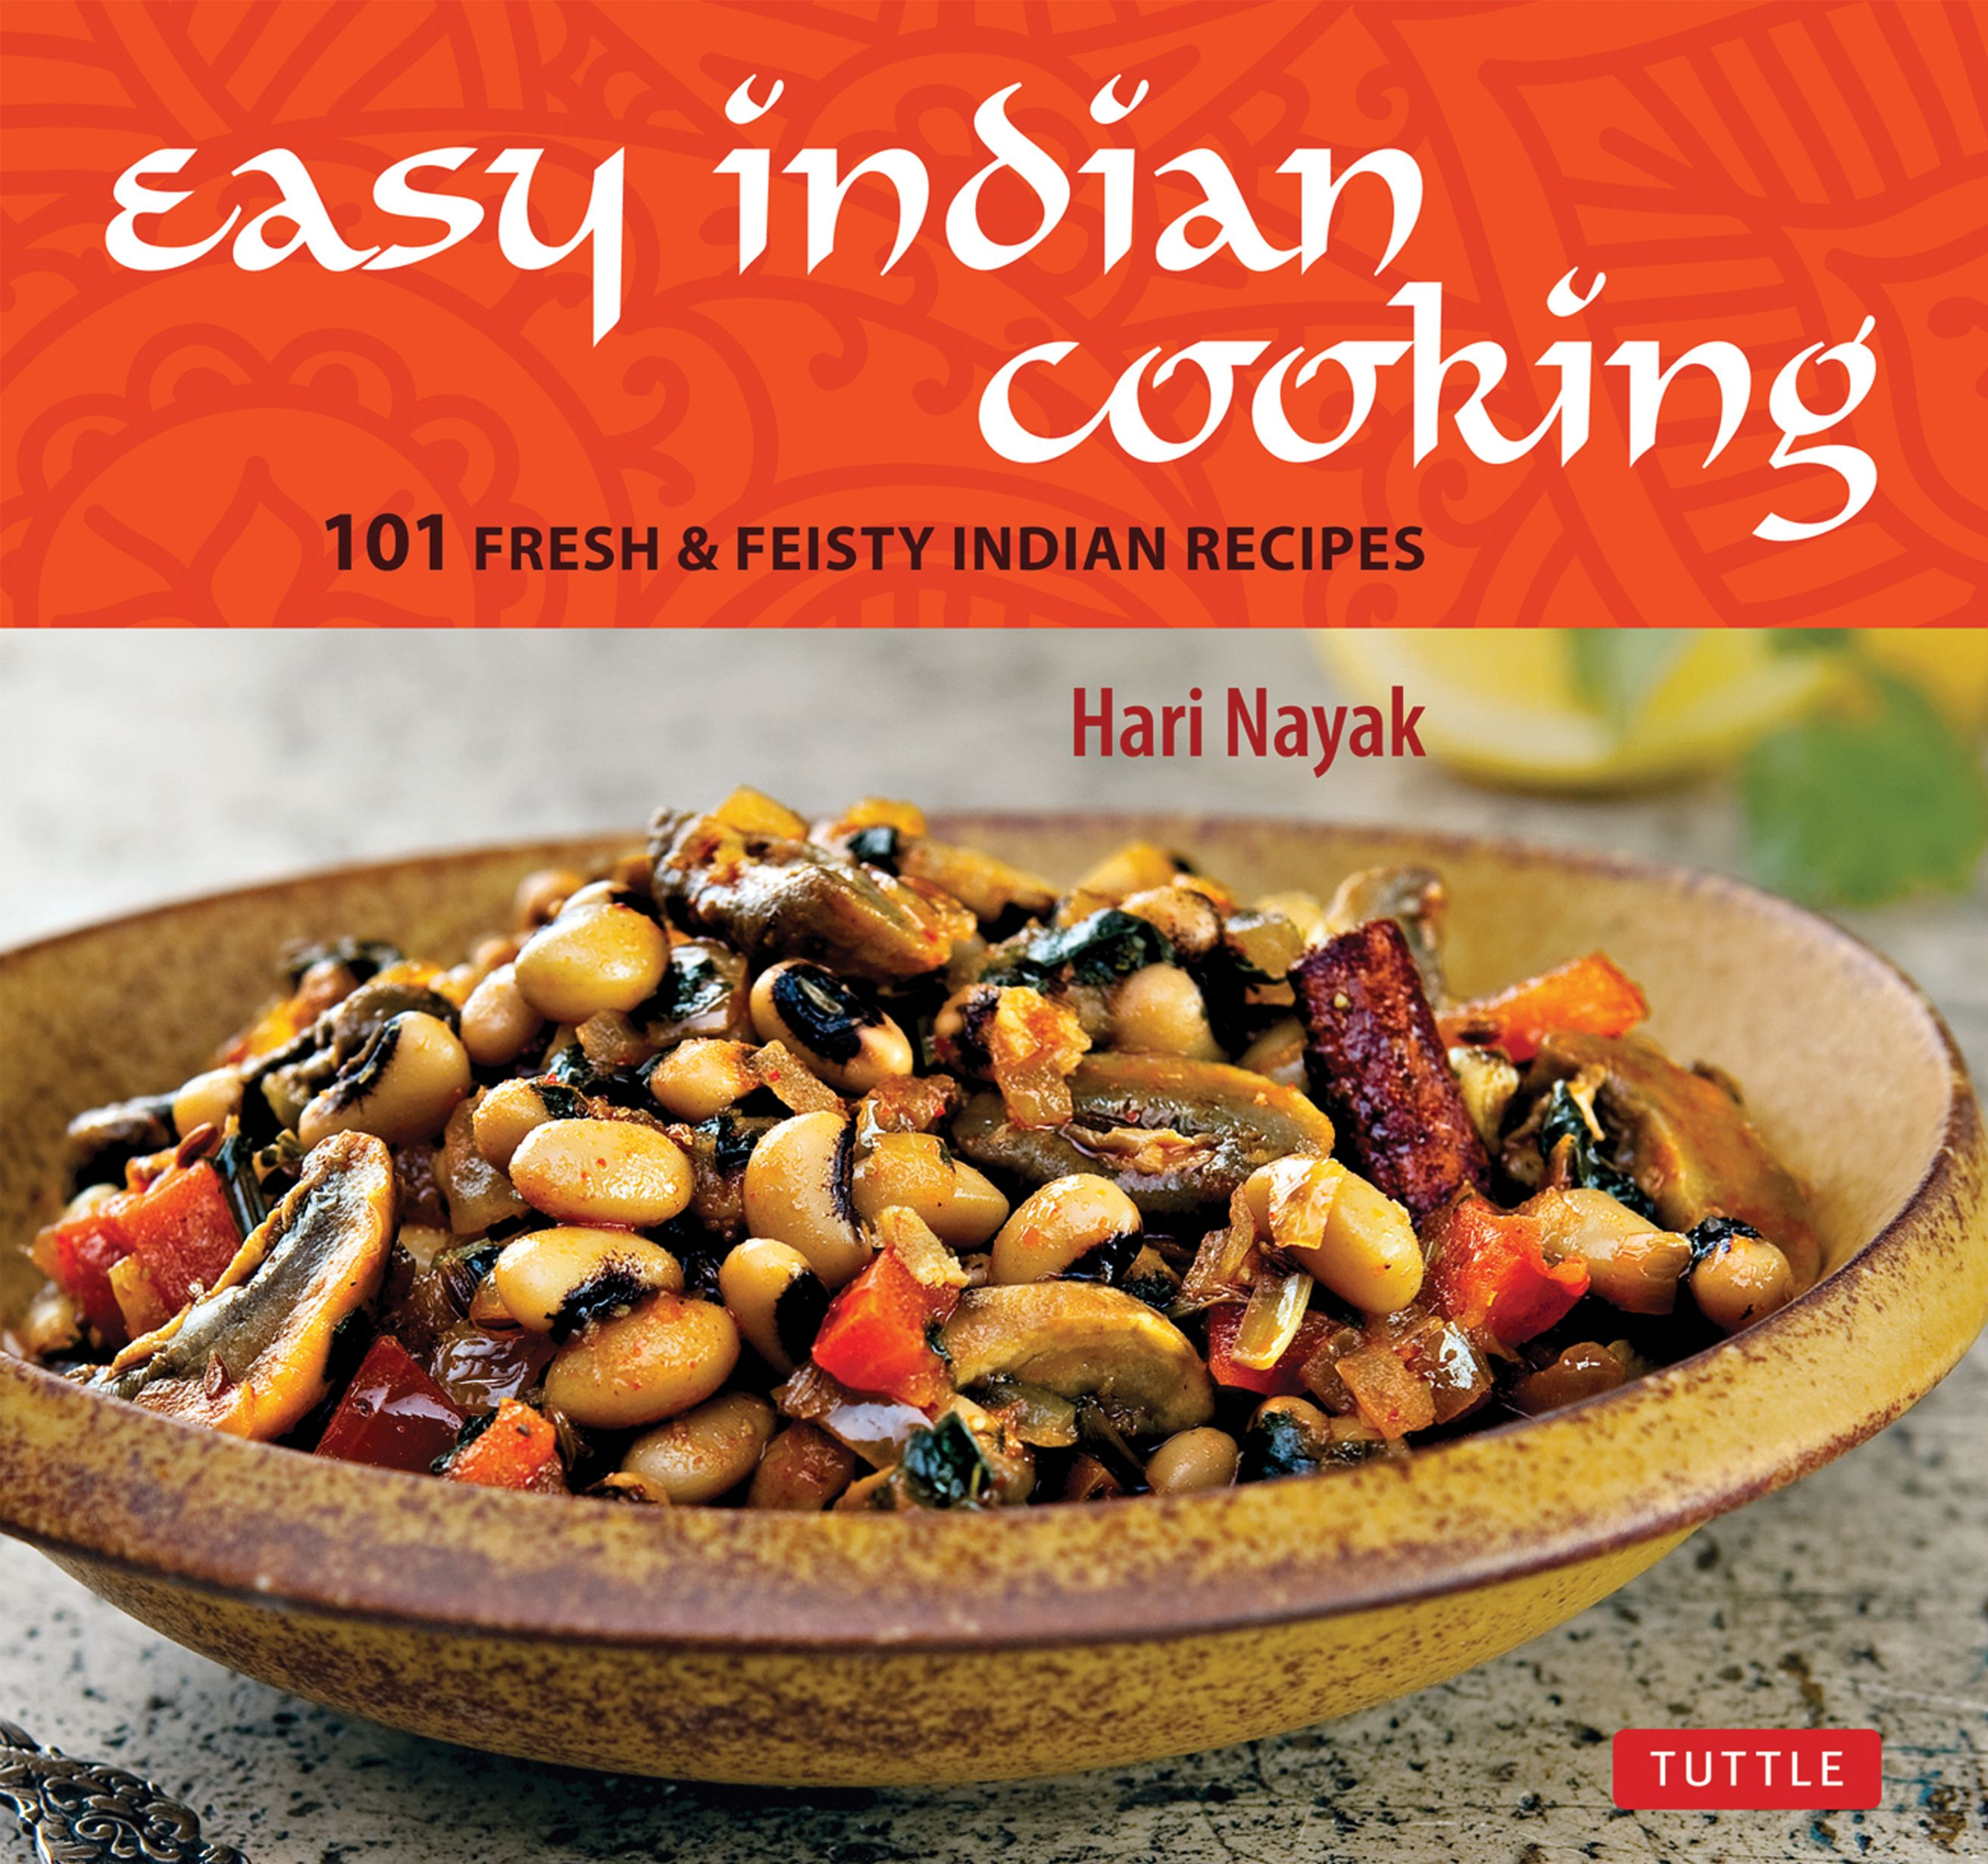 Like his previous books nayak shares some more of his easy to like his previous books nayak shares some more of his easy to follow recipes to create appealing hale and hearty meals in no time at all forumfinder Choice Image